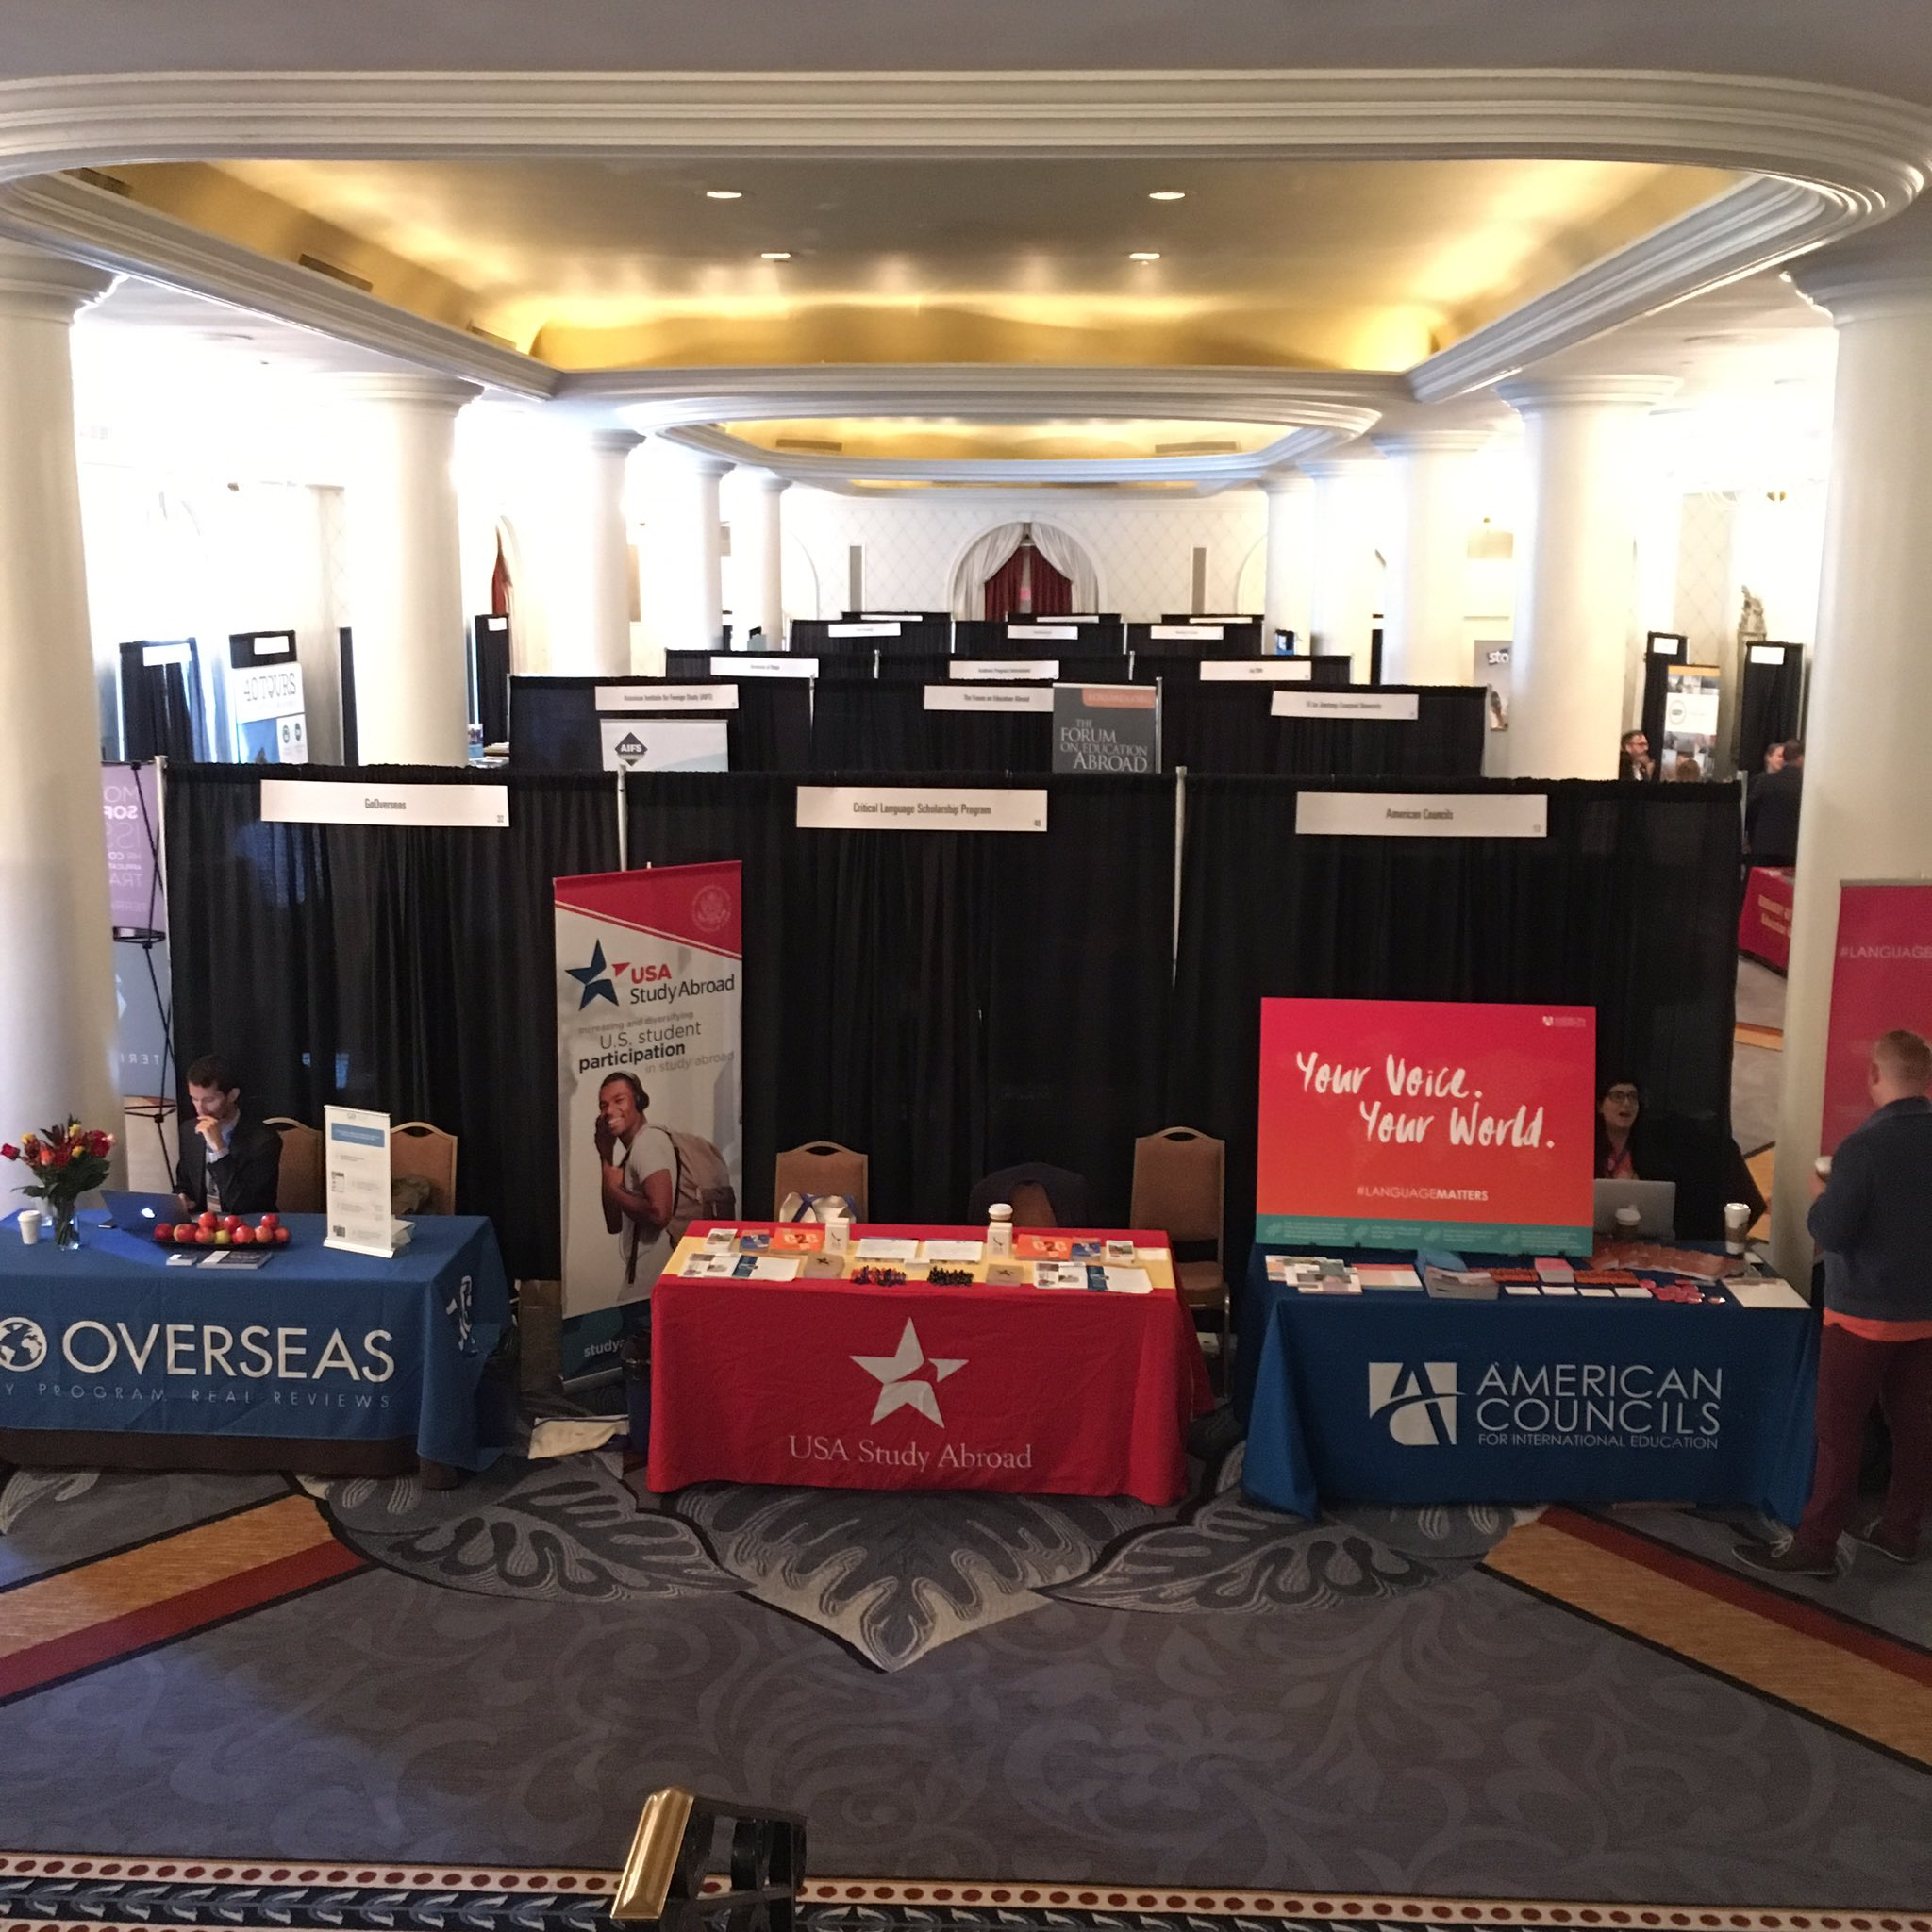 Bird's eye view of the exhibit hall at @IIE_Summit #IIESummit2016 #GenerationStudyAbroad https://t.co/0Cd9SqrHeL